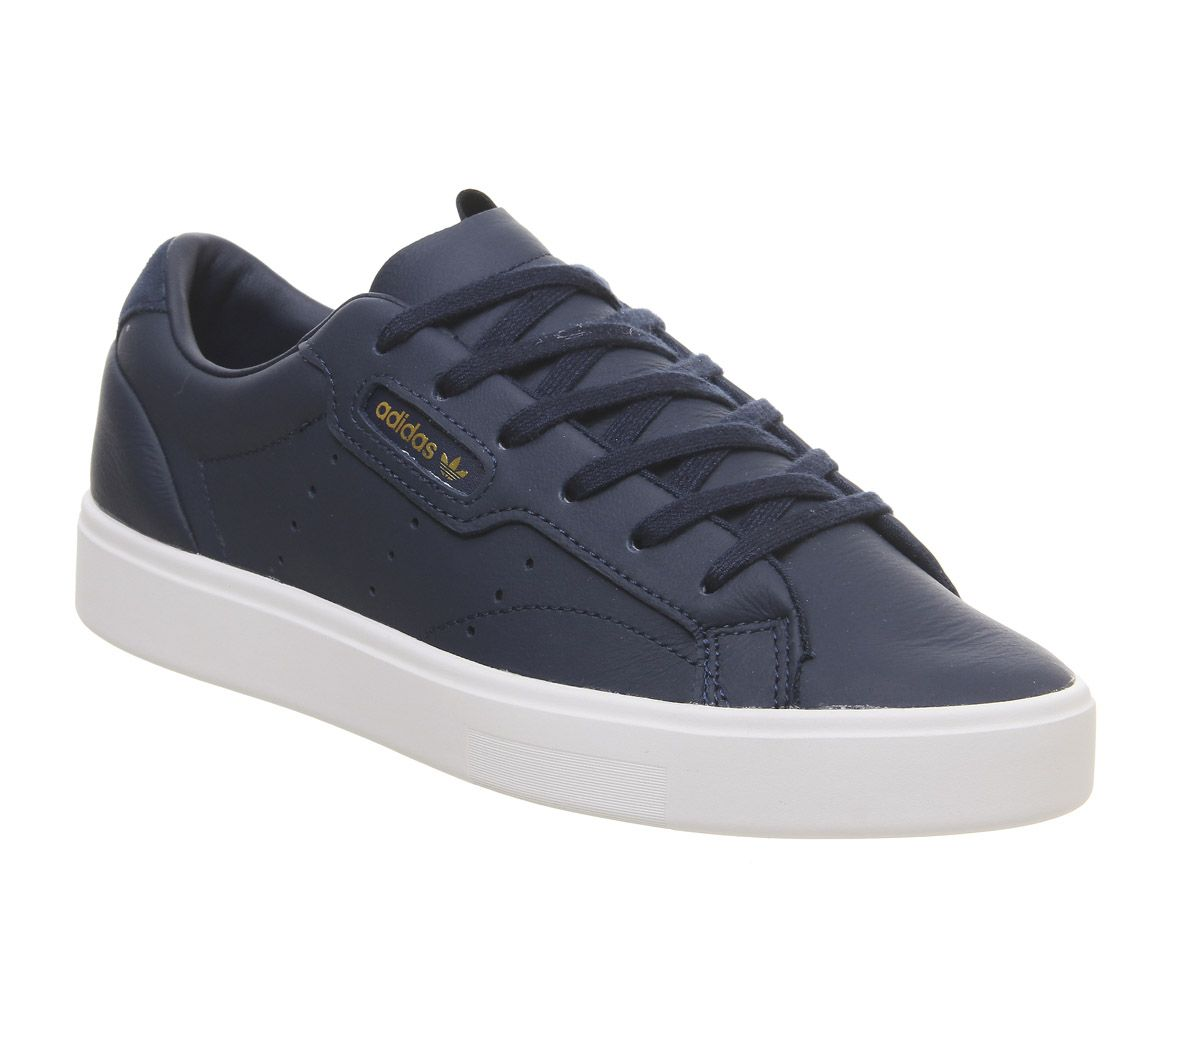 Details about Womens Adidas Sleek Trainers Collegiate Navy Crystal White Trainers Shoes